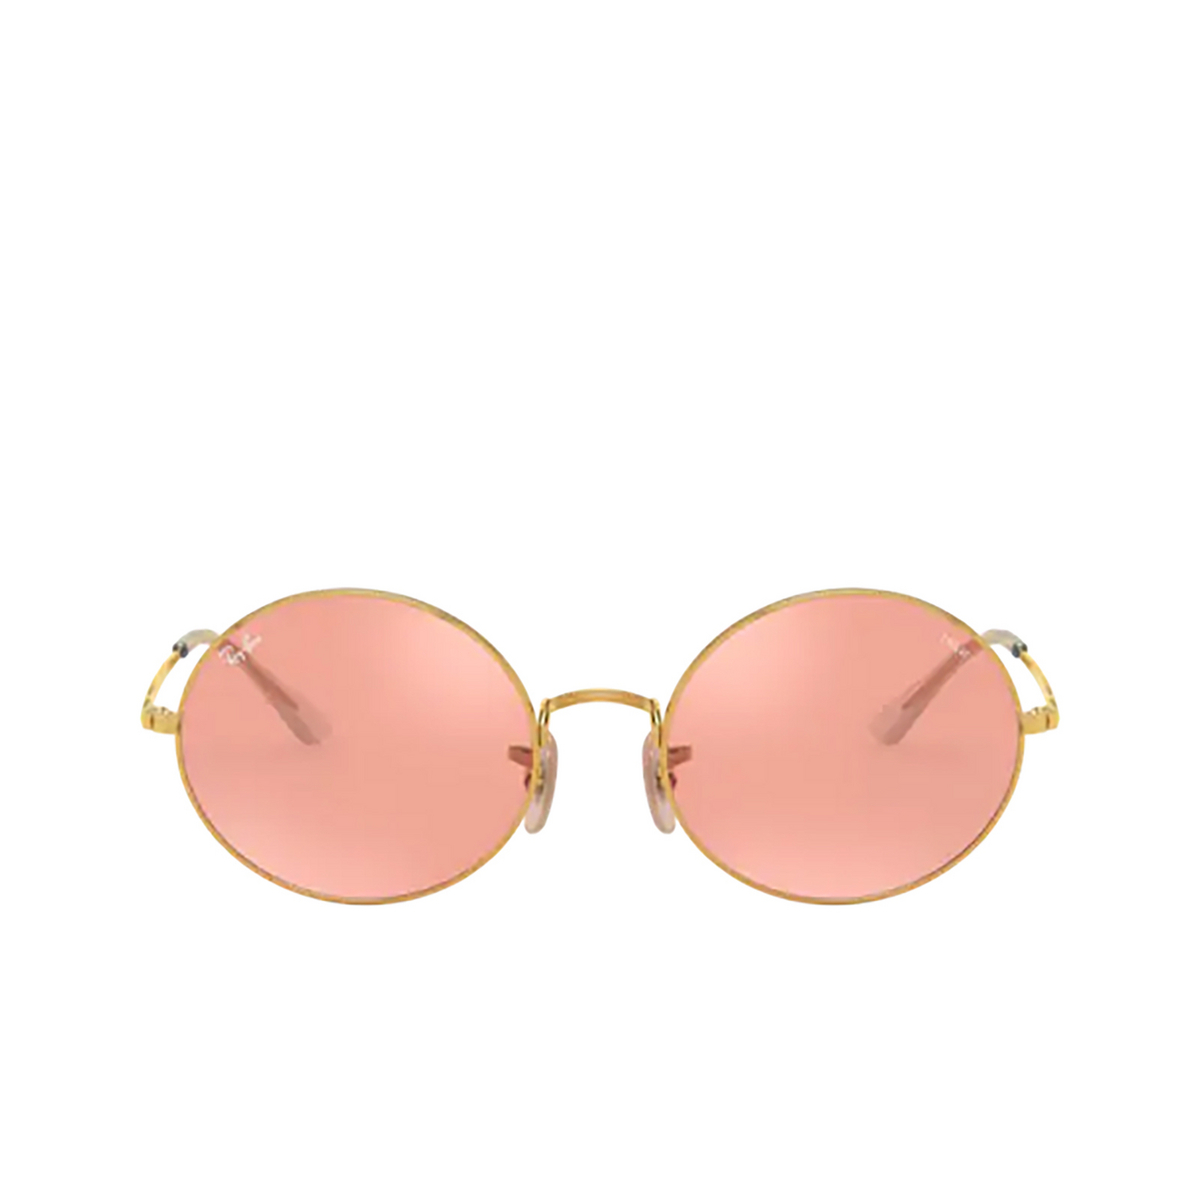 Ray-Ban® Oval Sunglasses: Oval RB1970 color Arista 001/3E - front view.